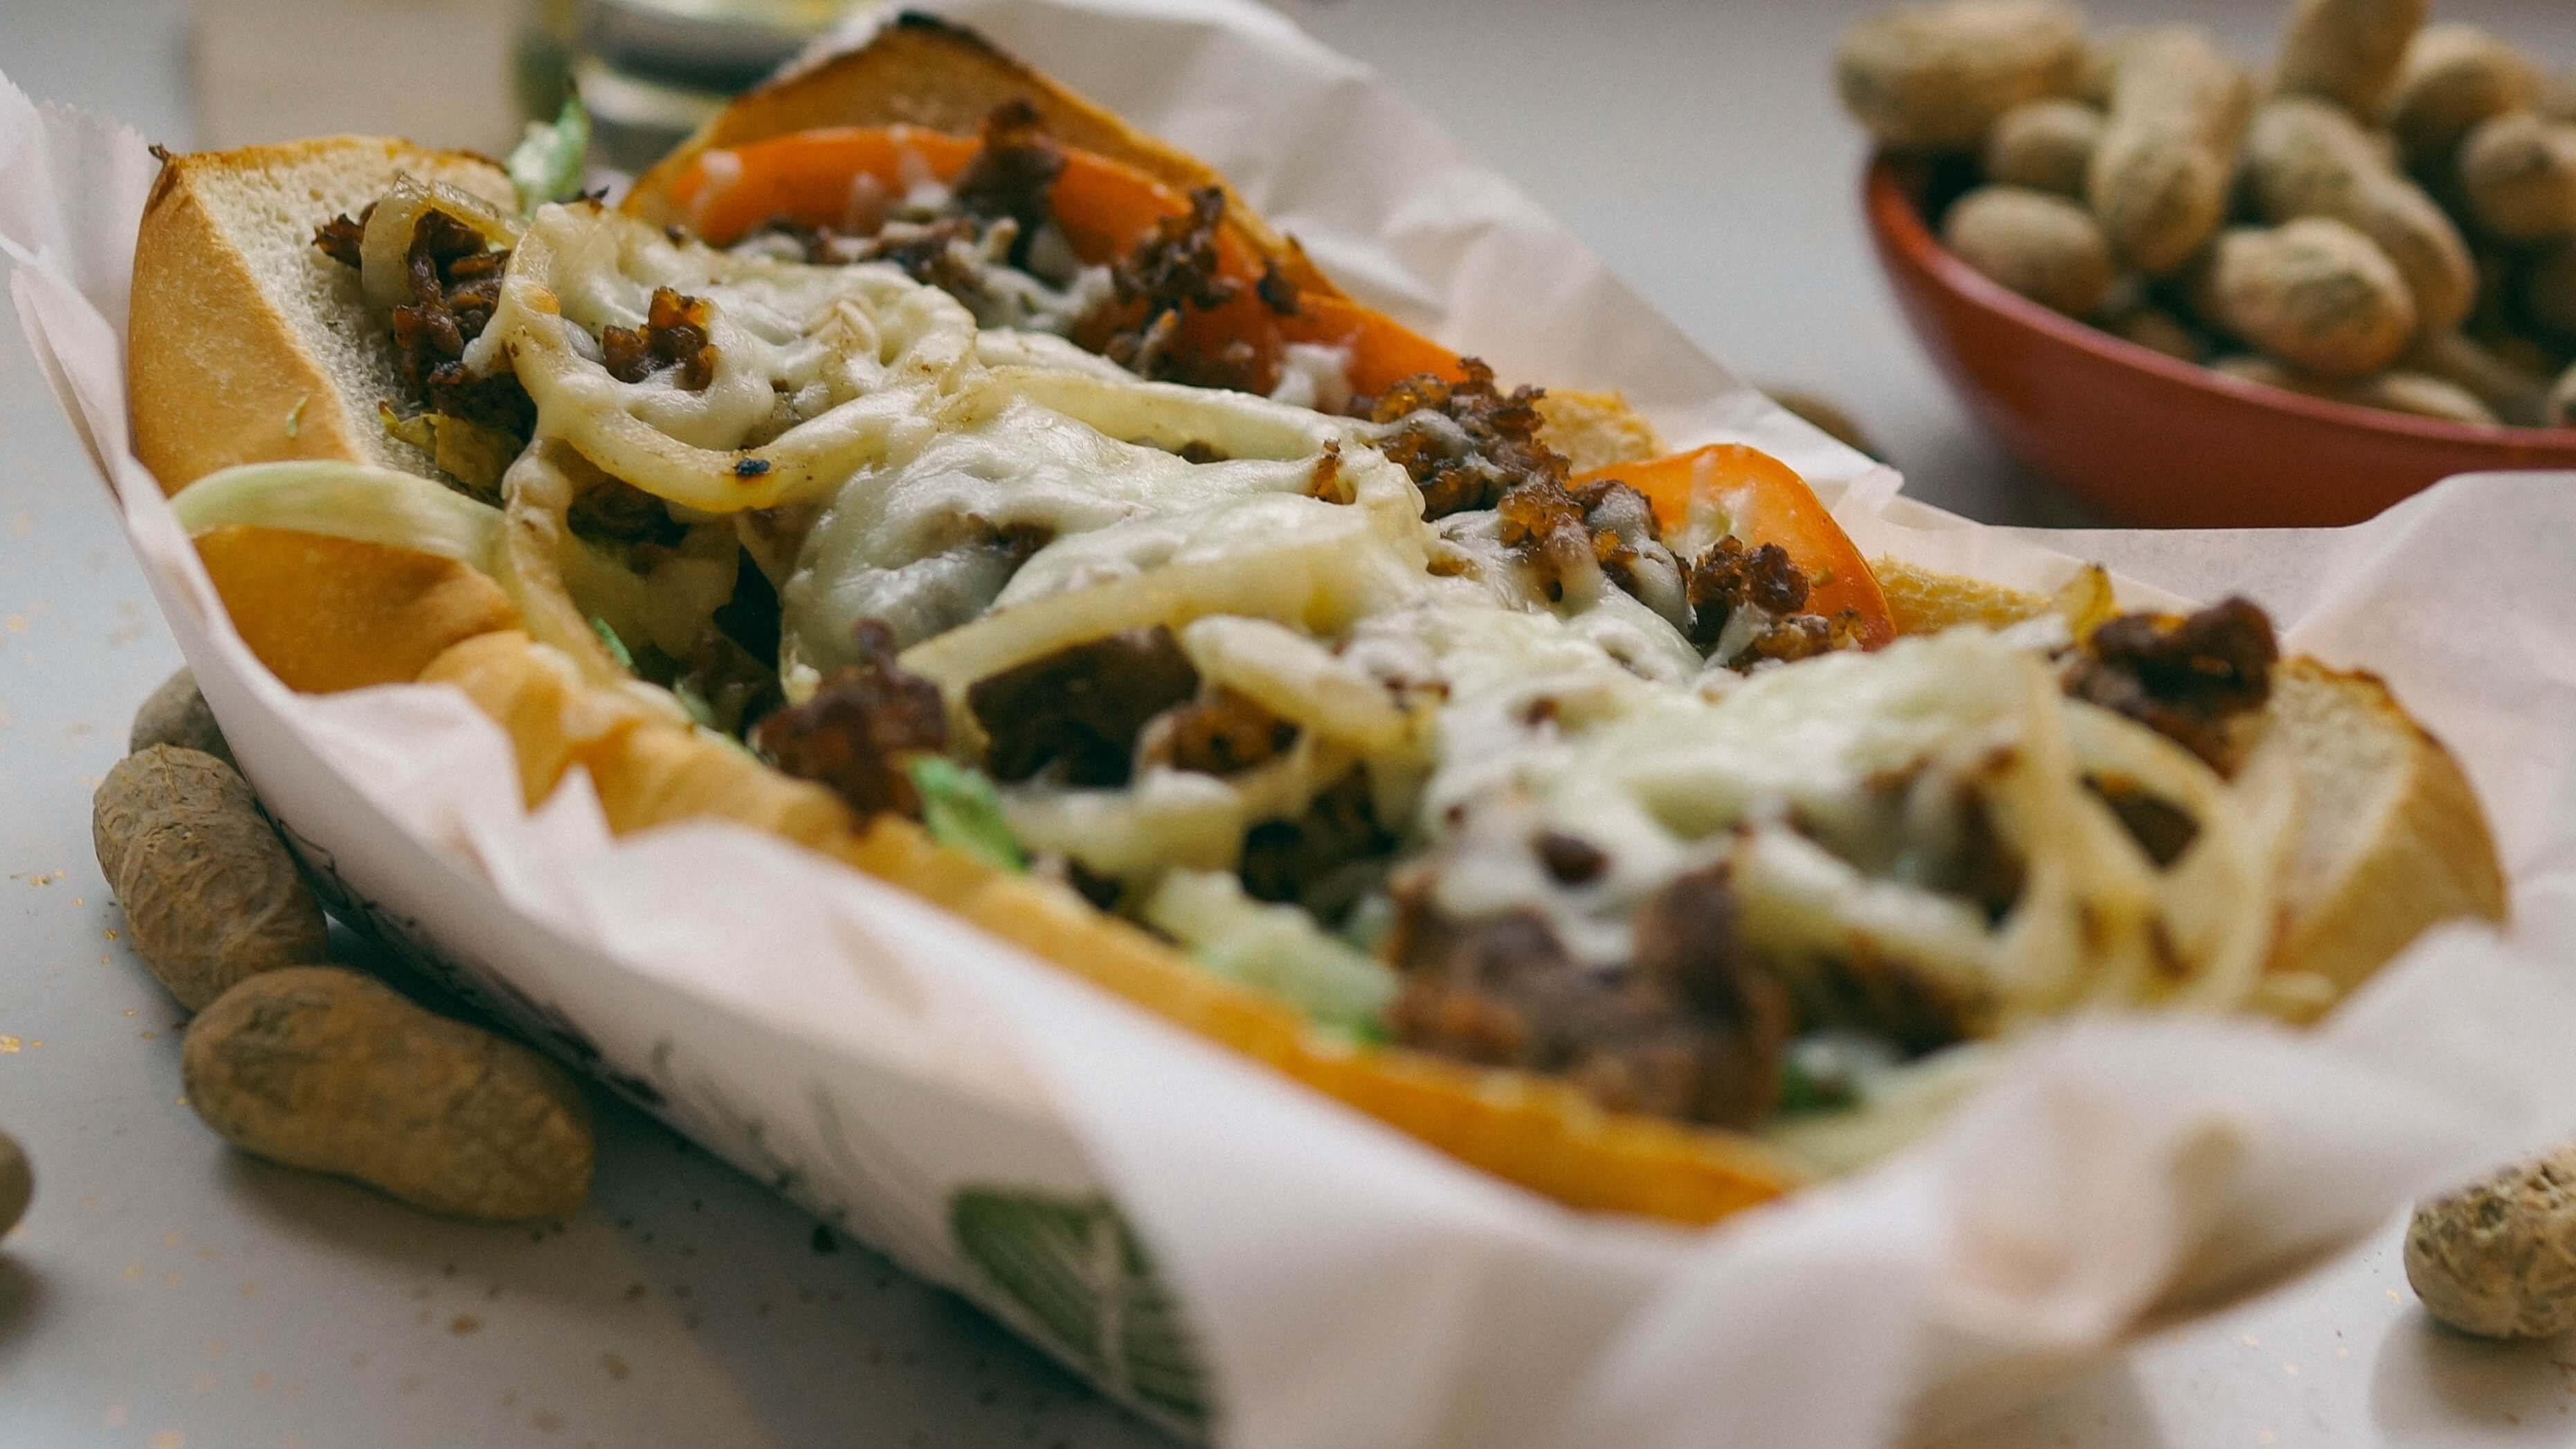 Vegan Coney Island Restaurant, Chili Mustard Onions, Opens in Detroit